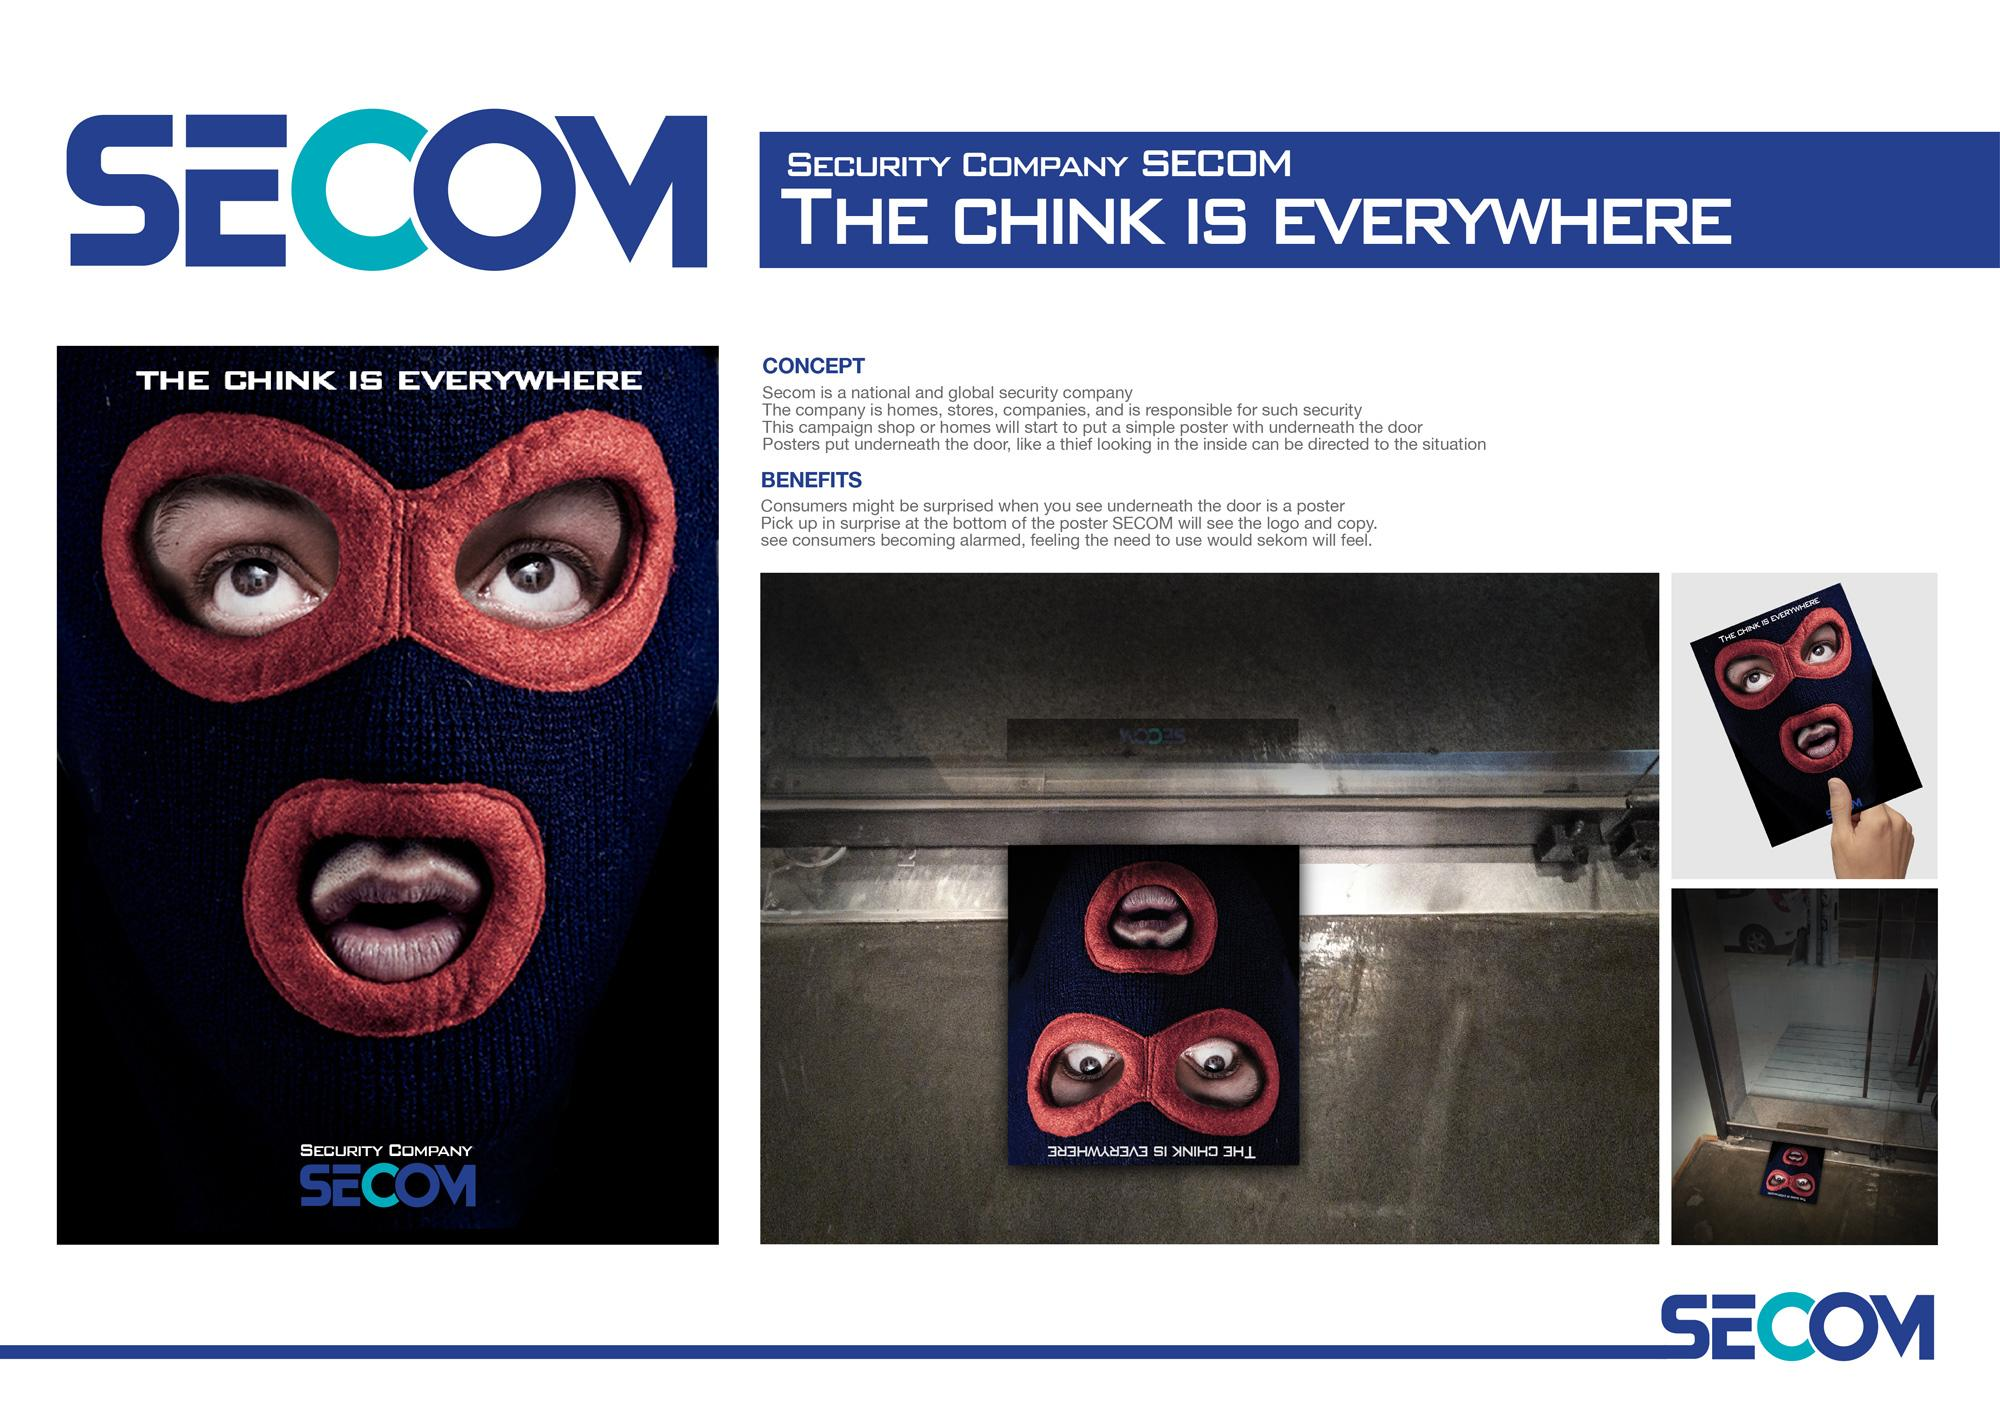 SECOM Direct Ad -  The chink is everywhere